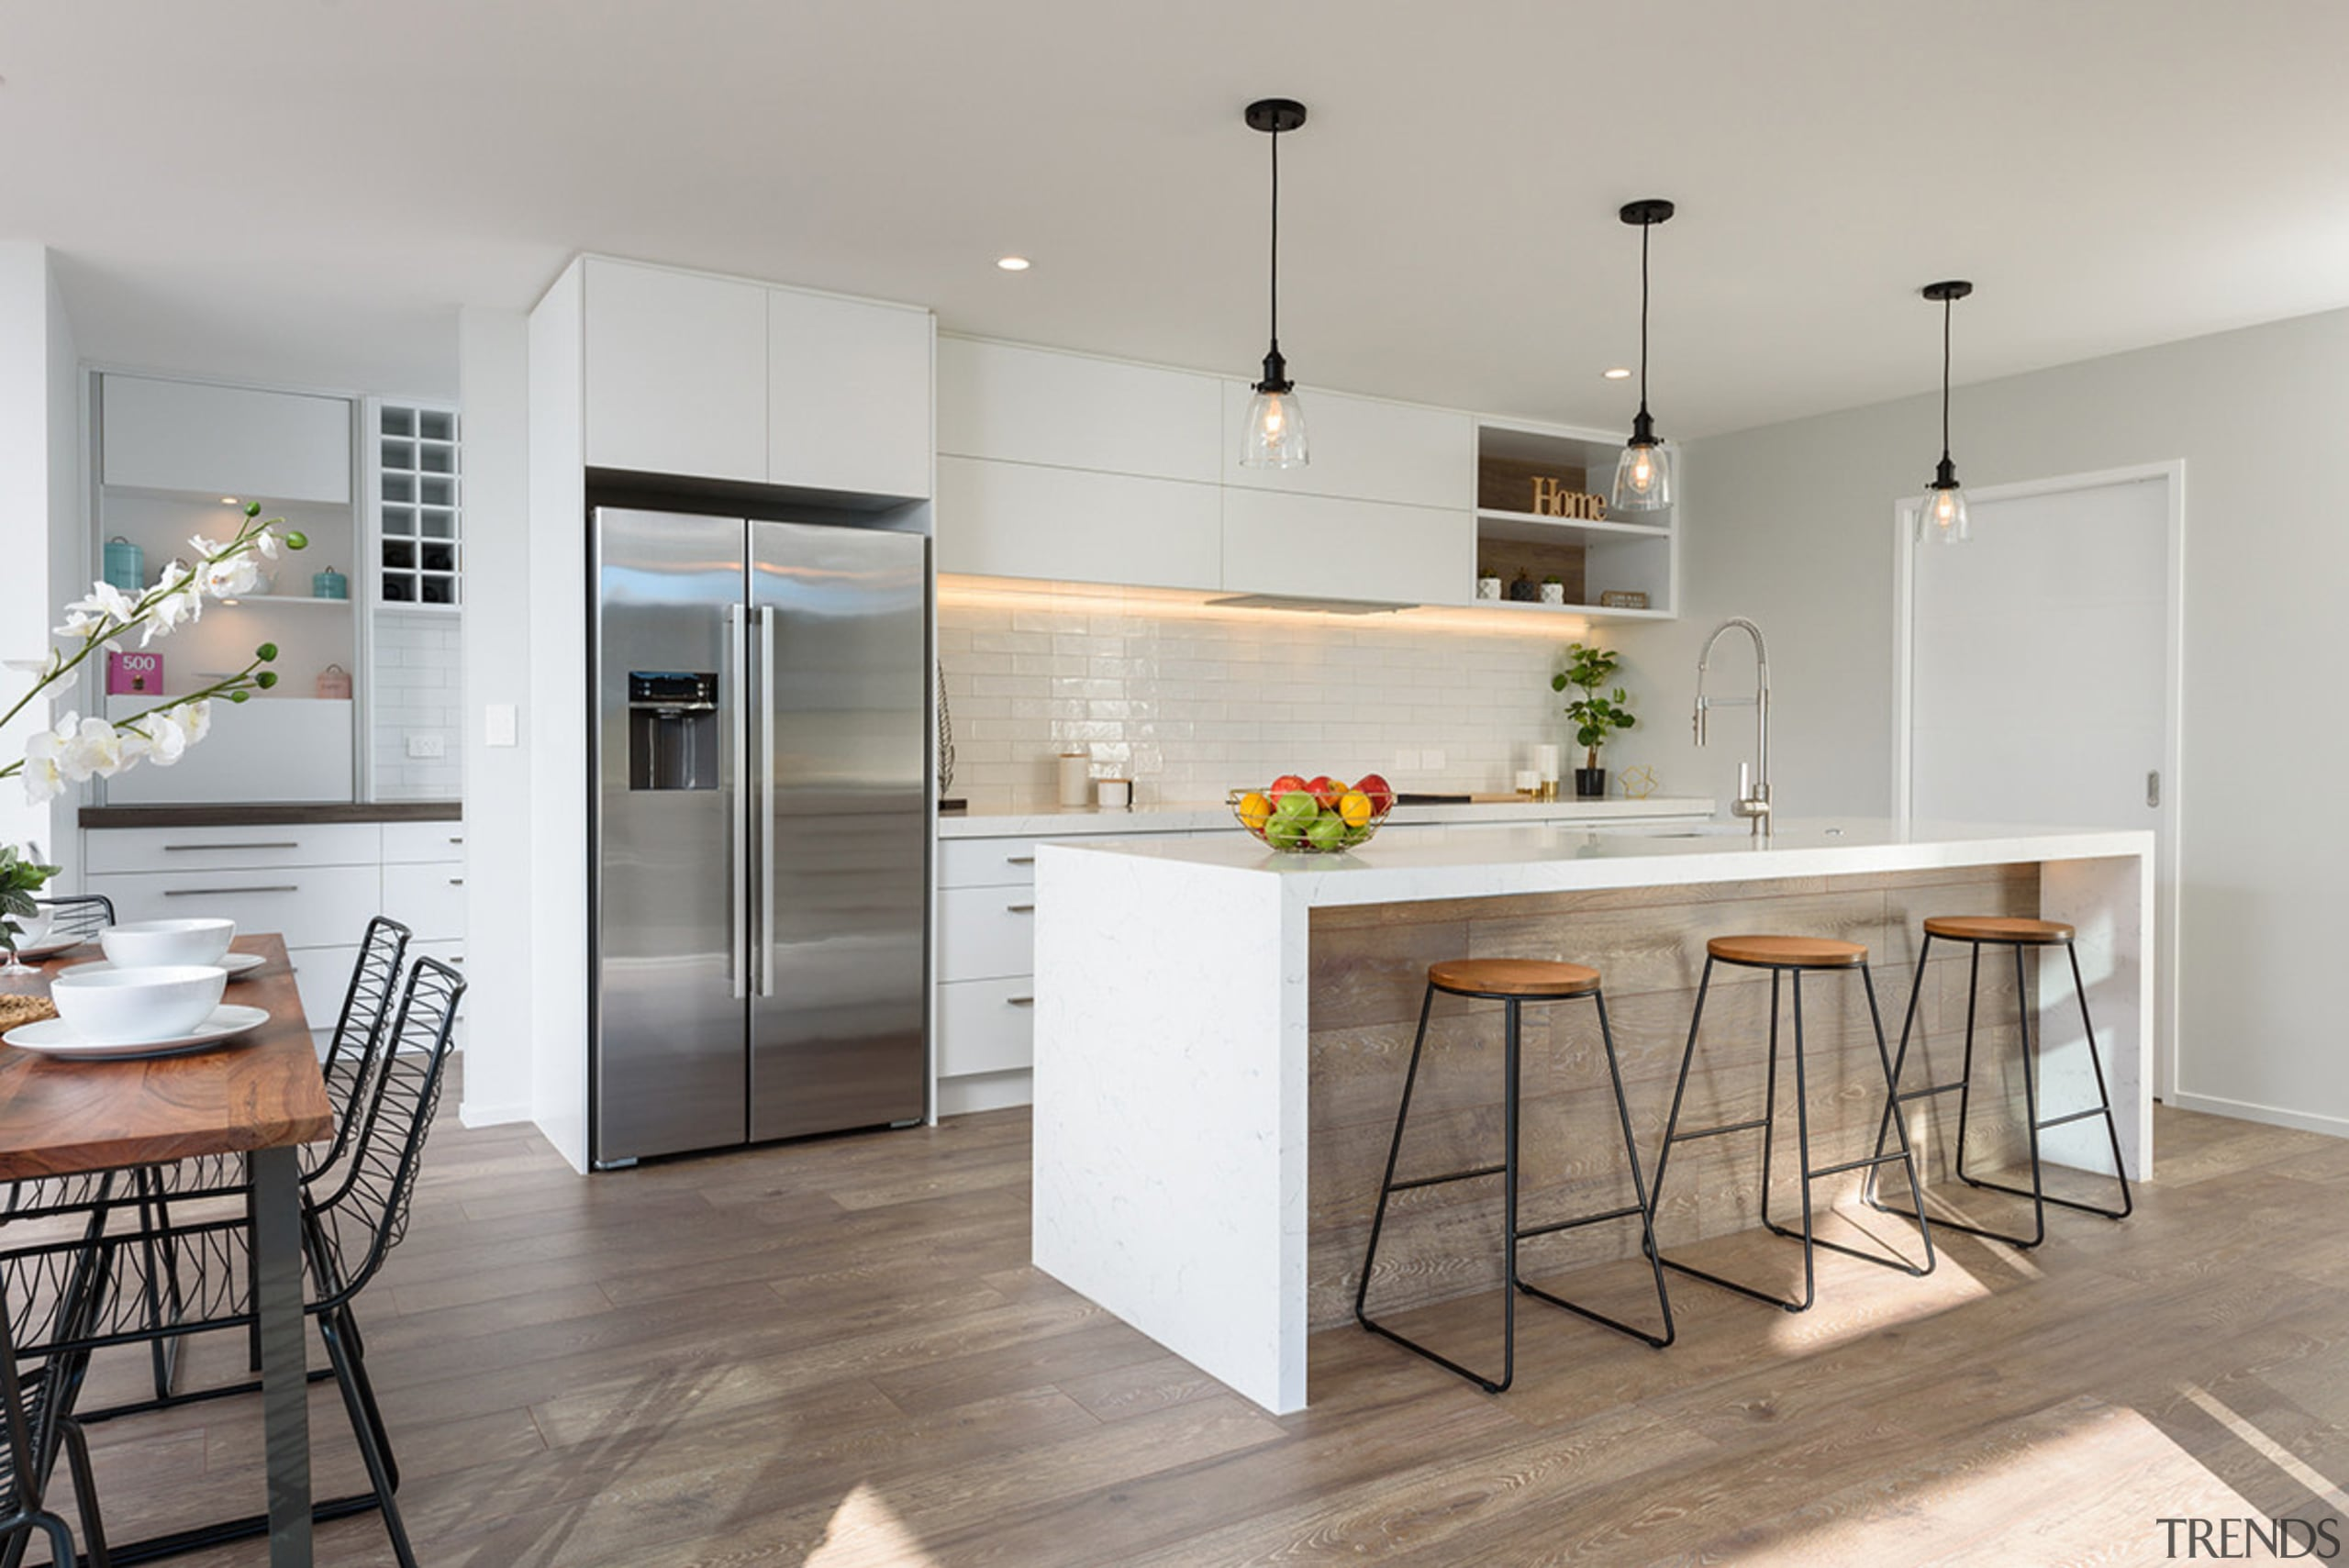 This showhome's wood floor finish is repeated on cabinetry, countertop, cuisine,  classique, flooring, home appliance, interior design, kitchen, wood flooring, timber flooring, sentinel homes, contemporary kitchen